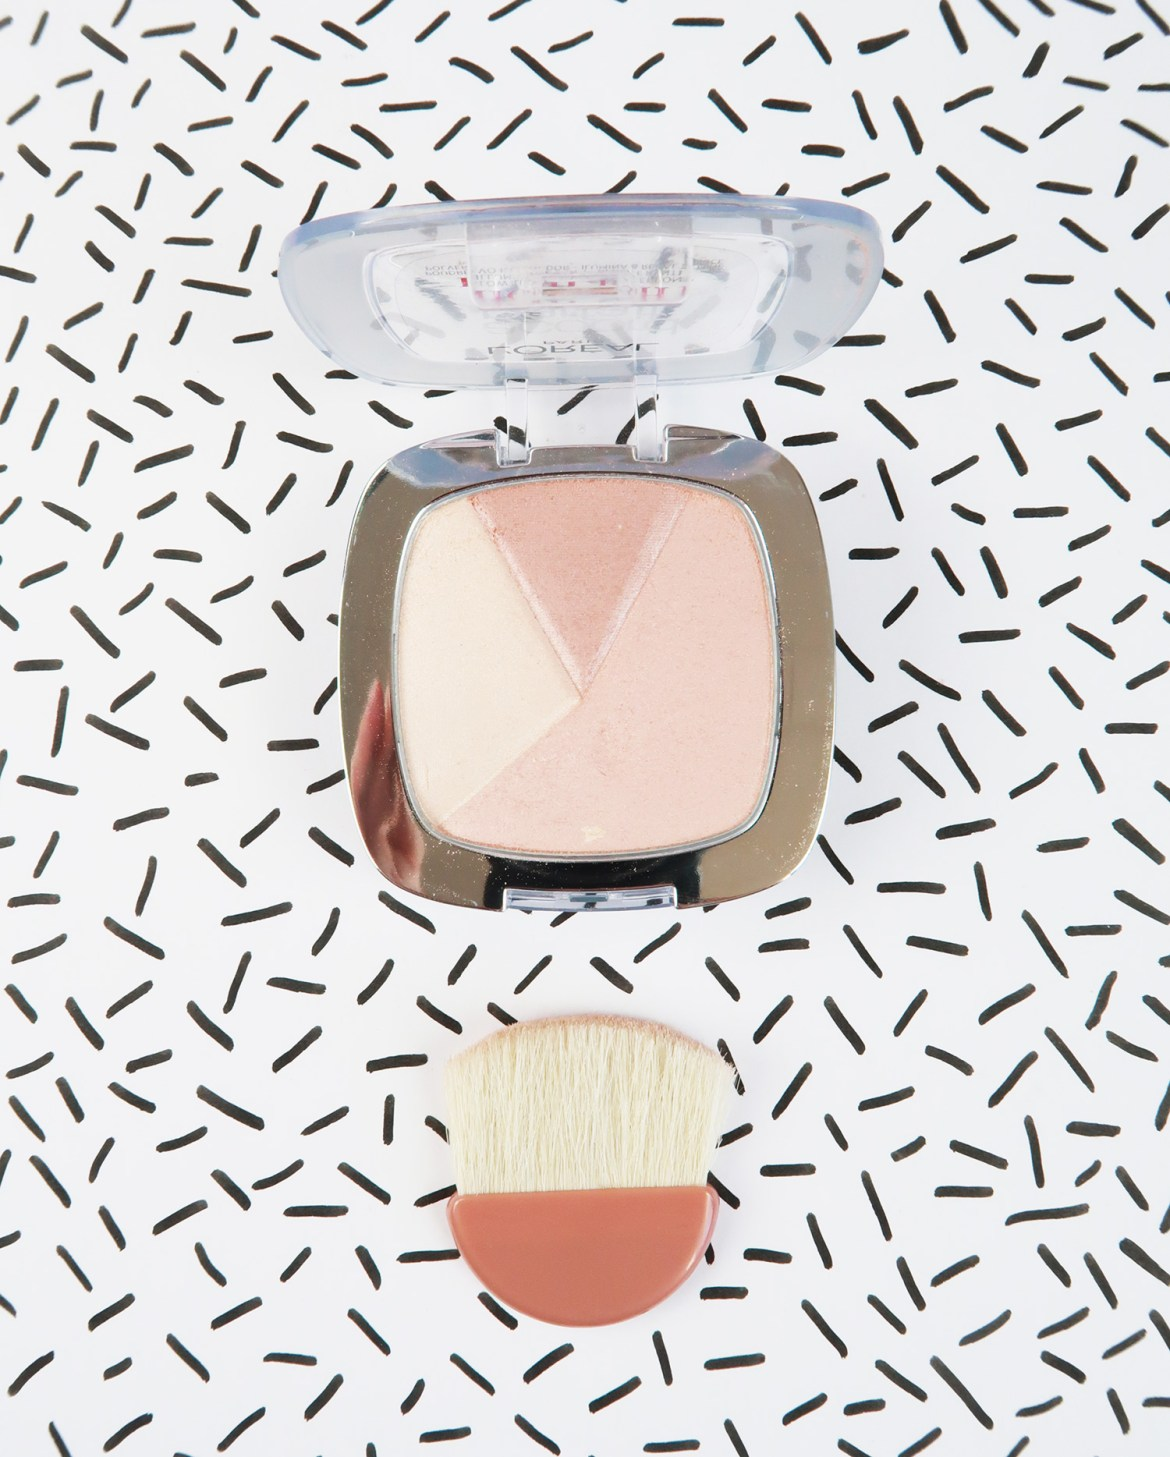 highlighter accord parfait l'oreal paris